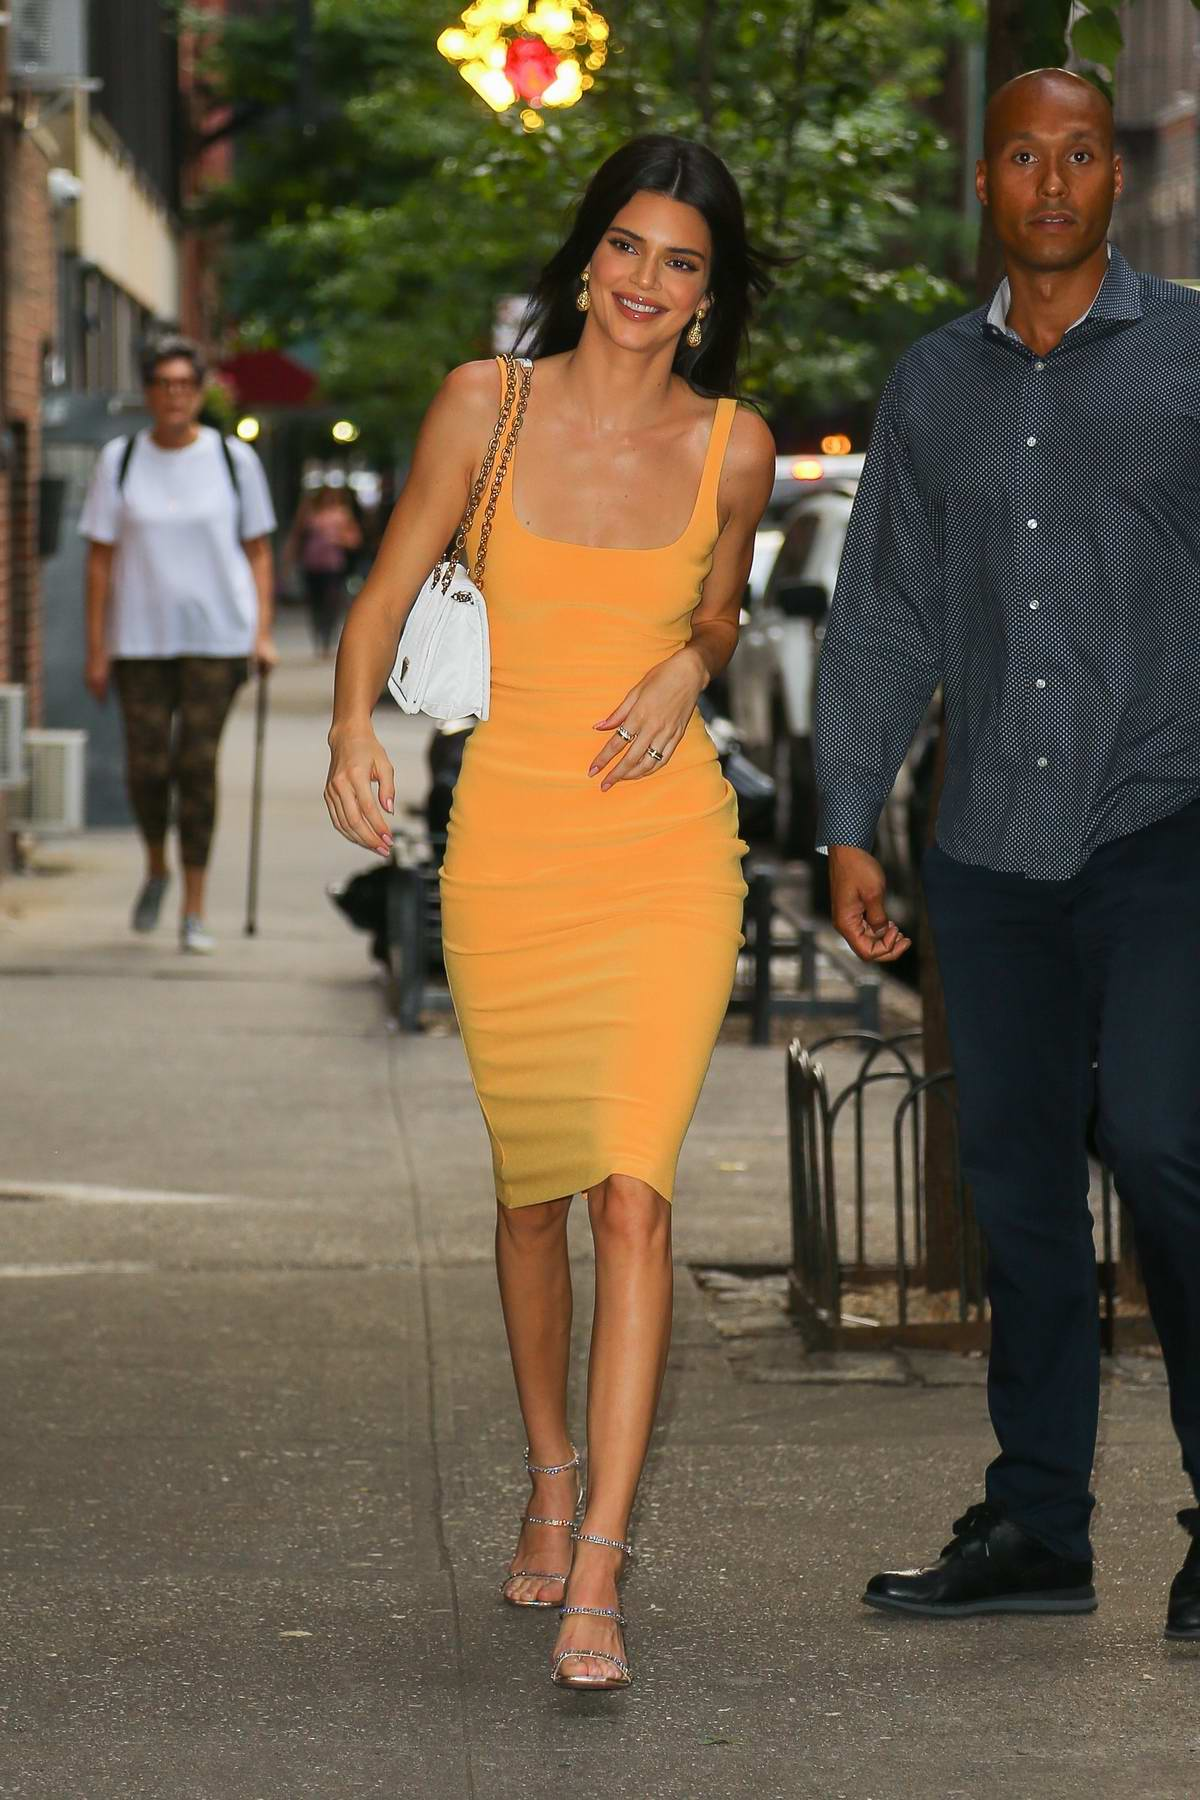 Kendall Jenner looks gorgeous in a yellow dress as she steps in New York City